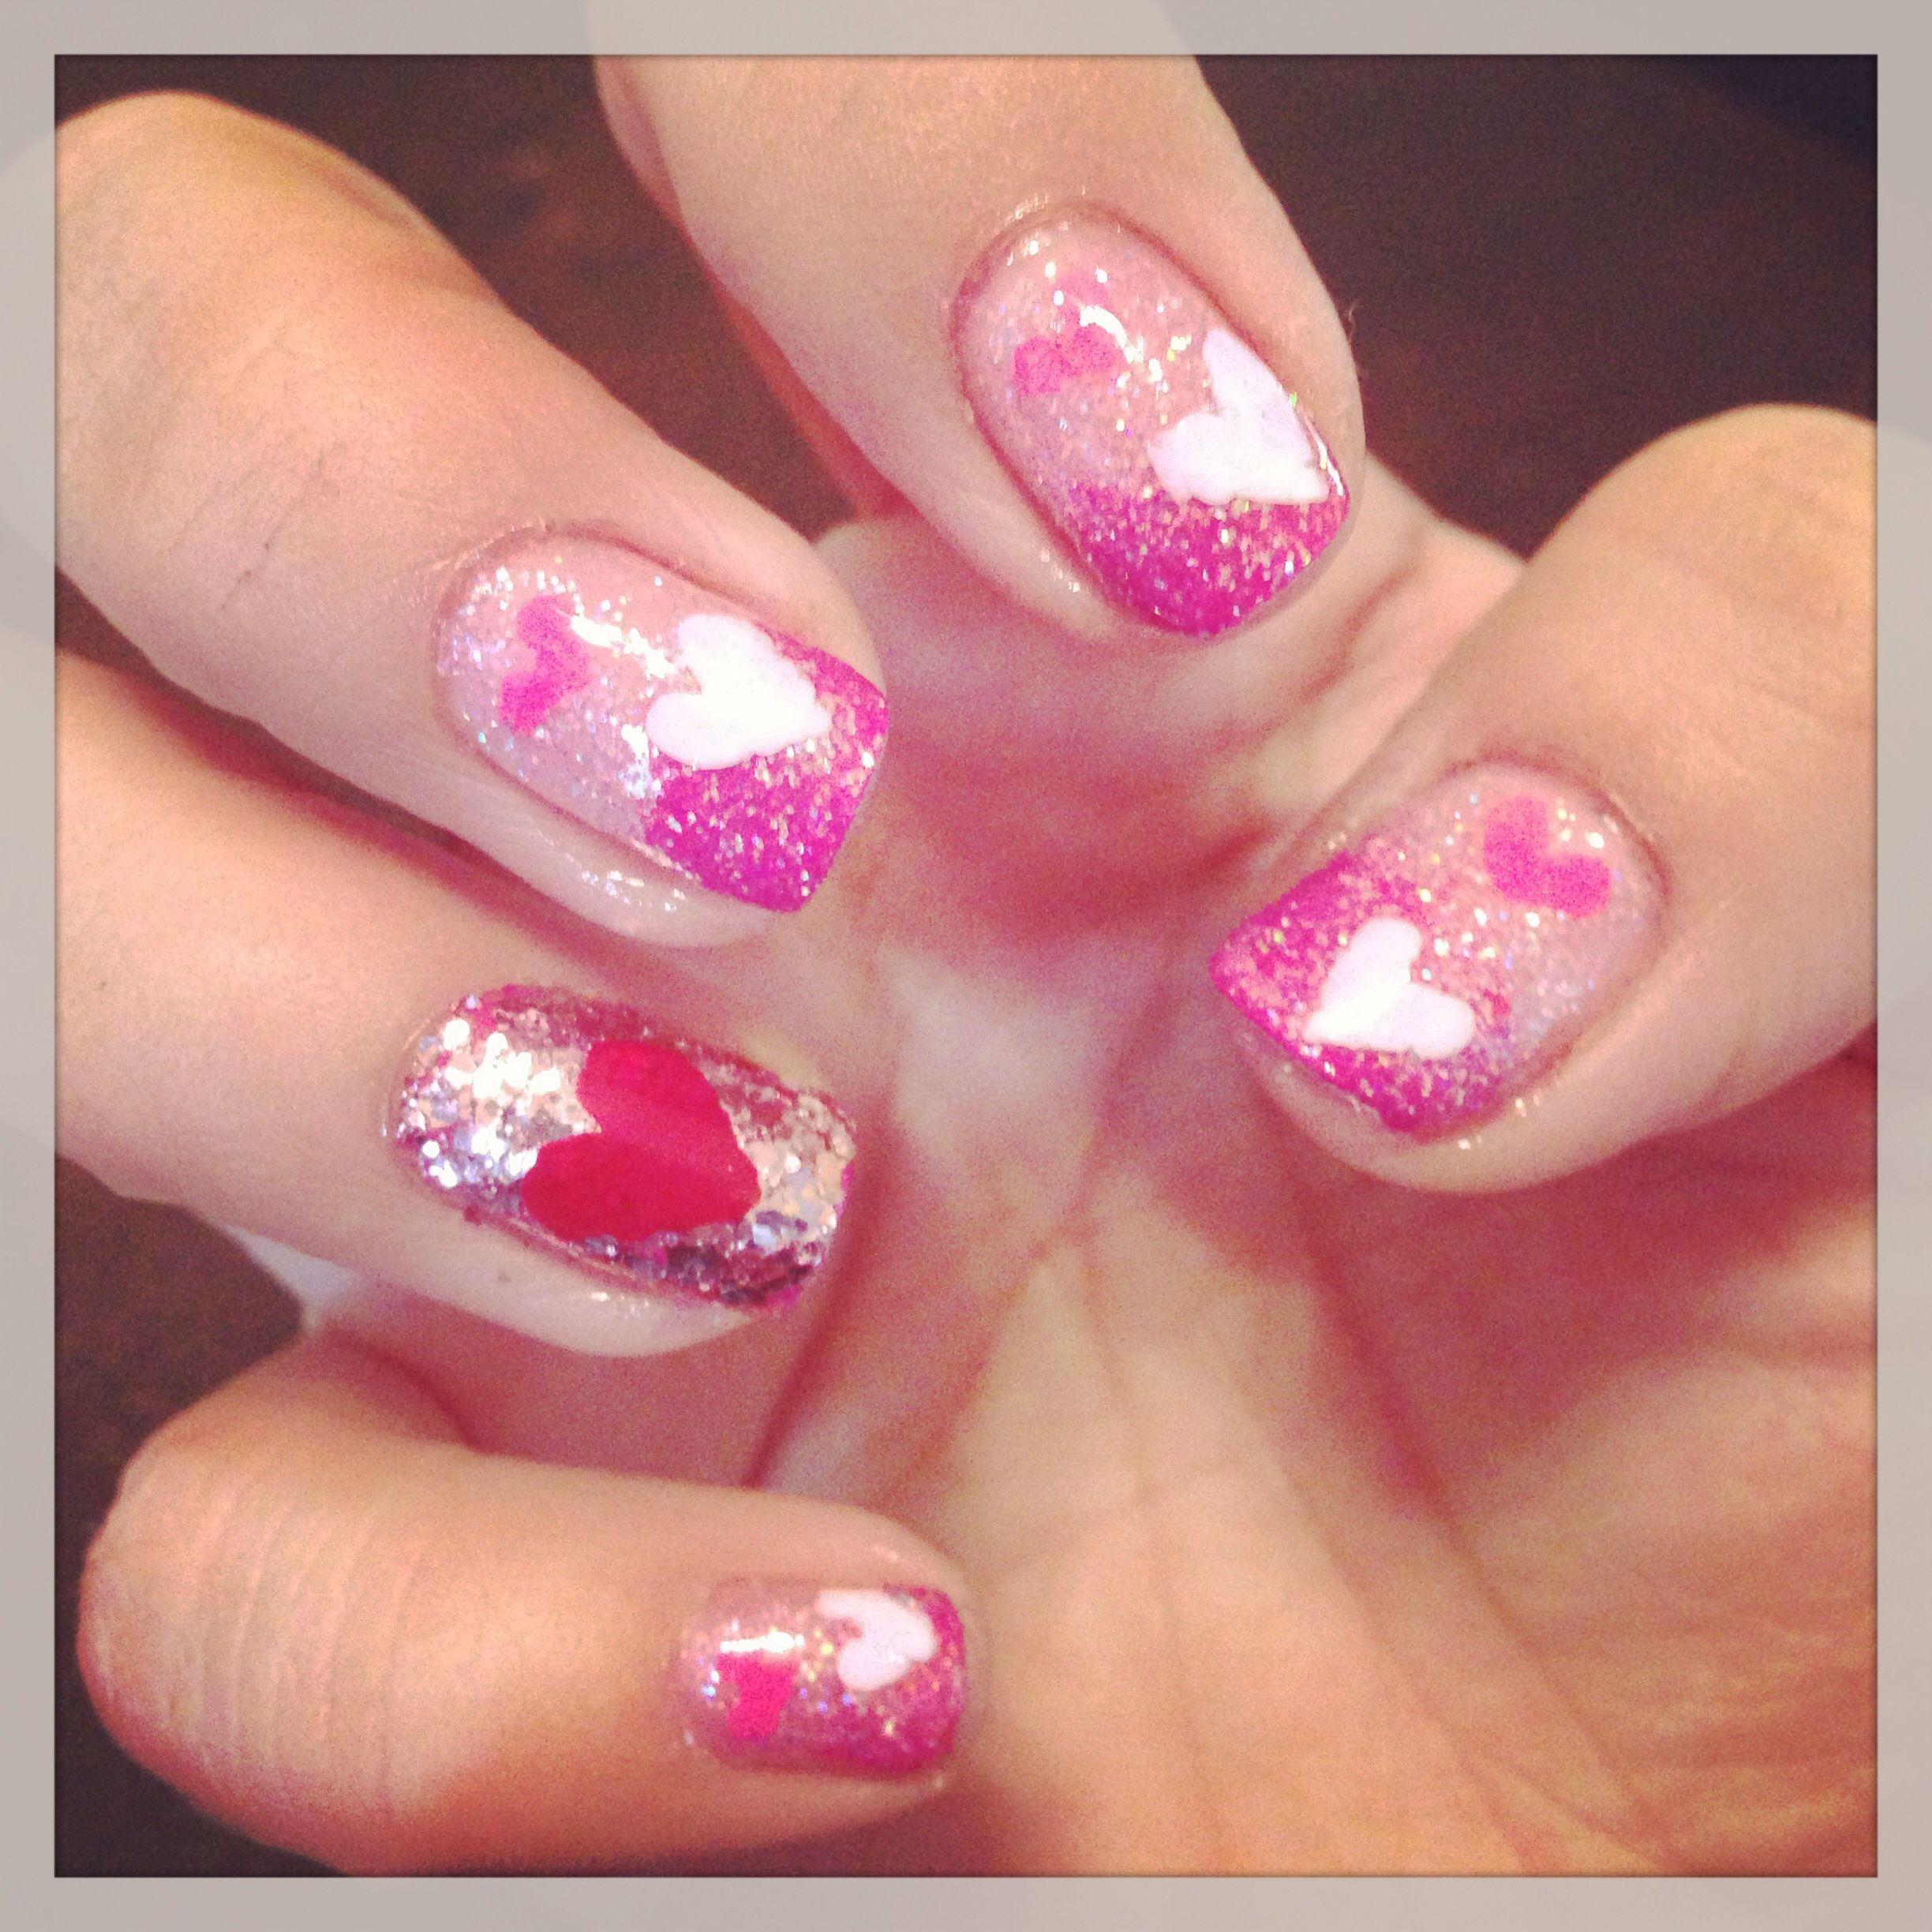 Magnificent Nails For February Inspiration - Nail Art Design Ideas ...